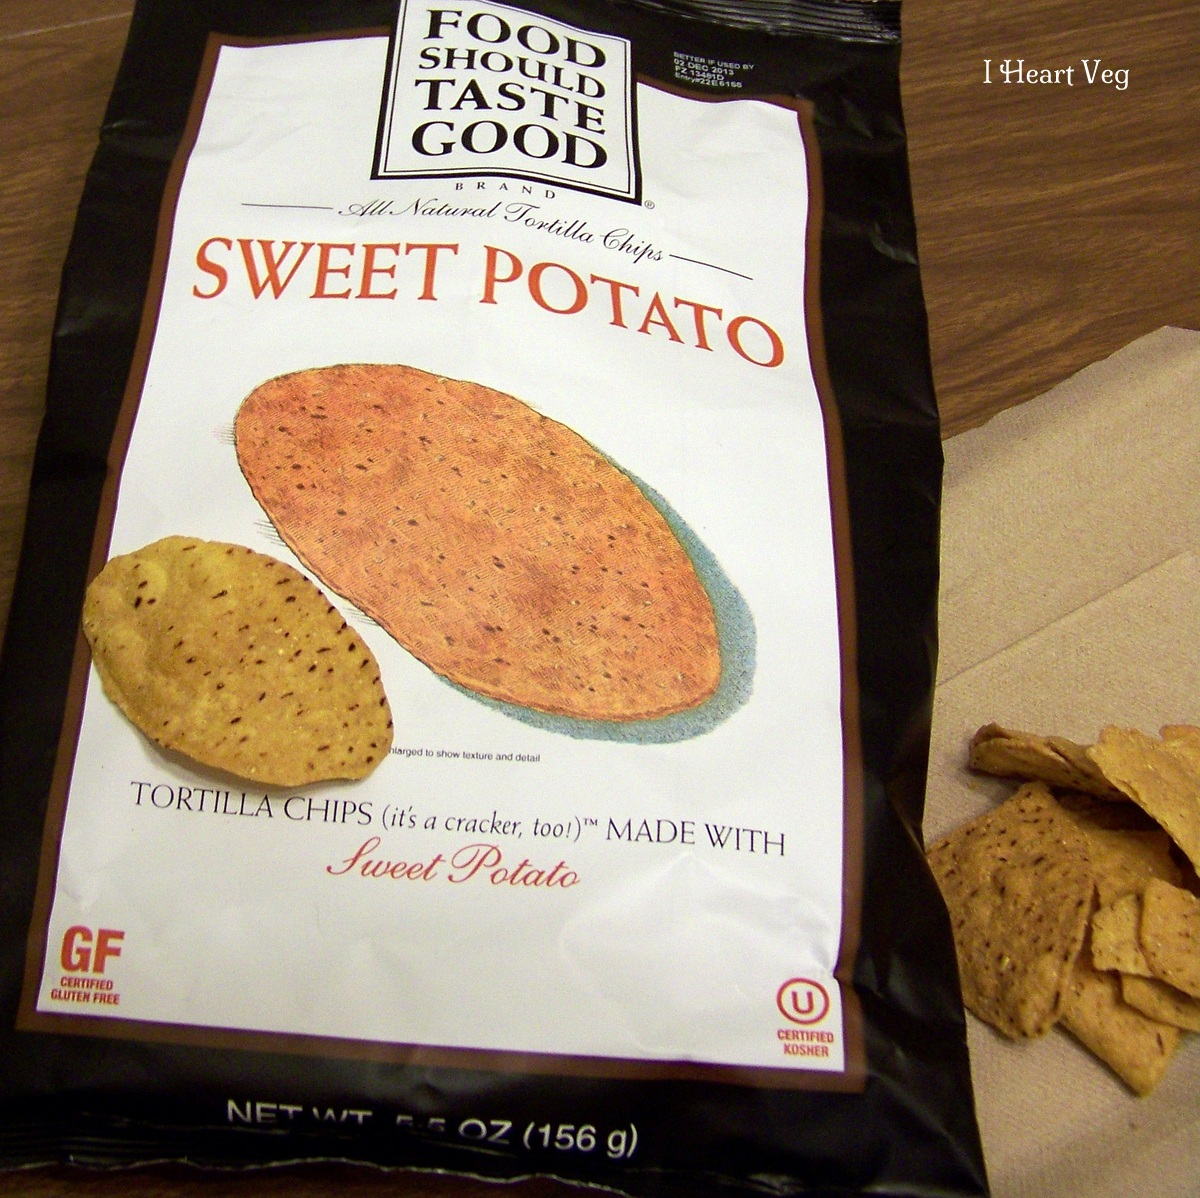 food should taste good sweet potato chip